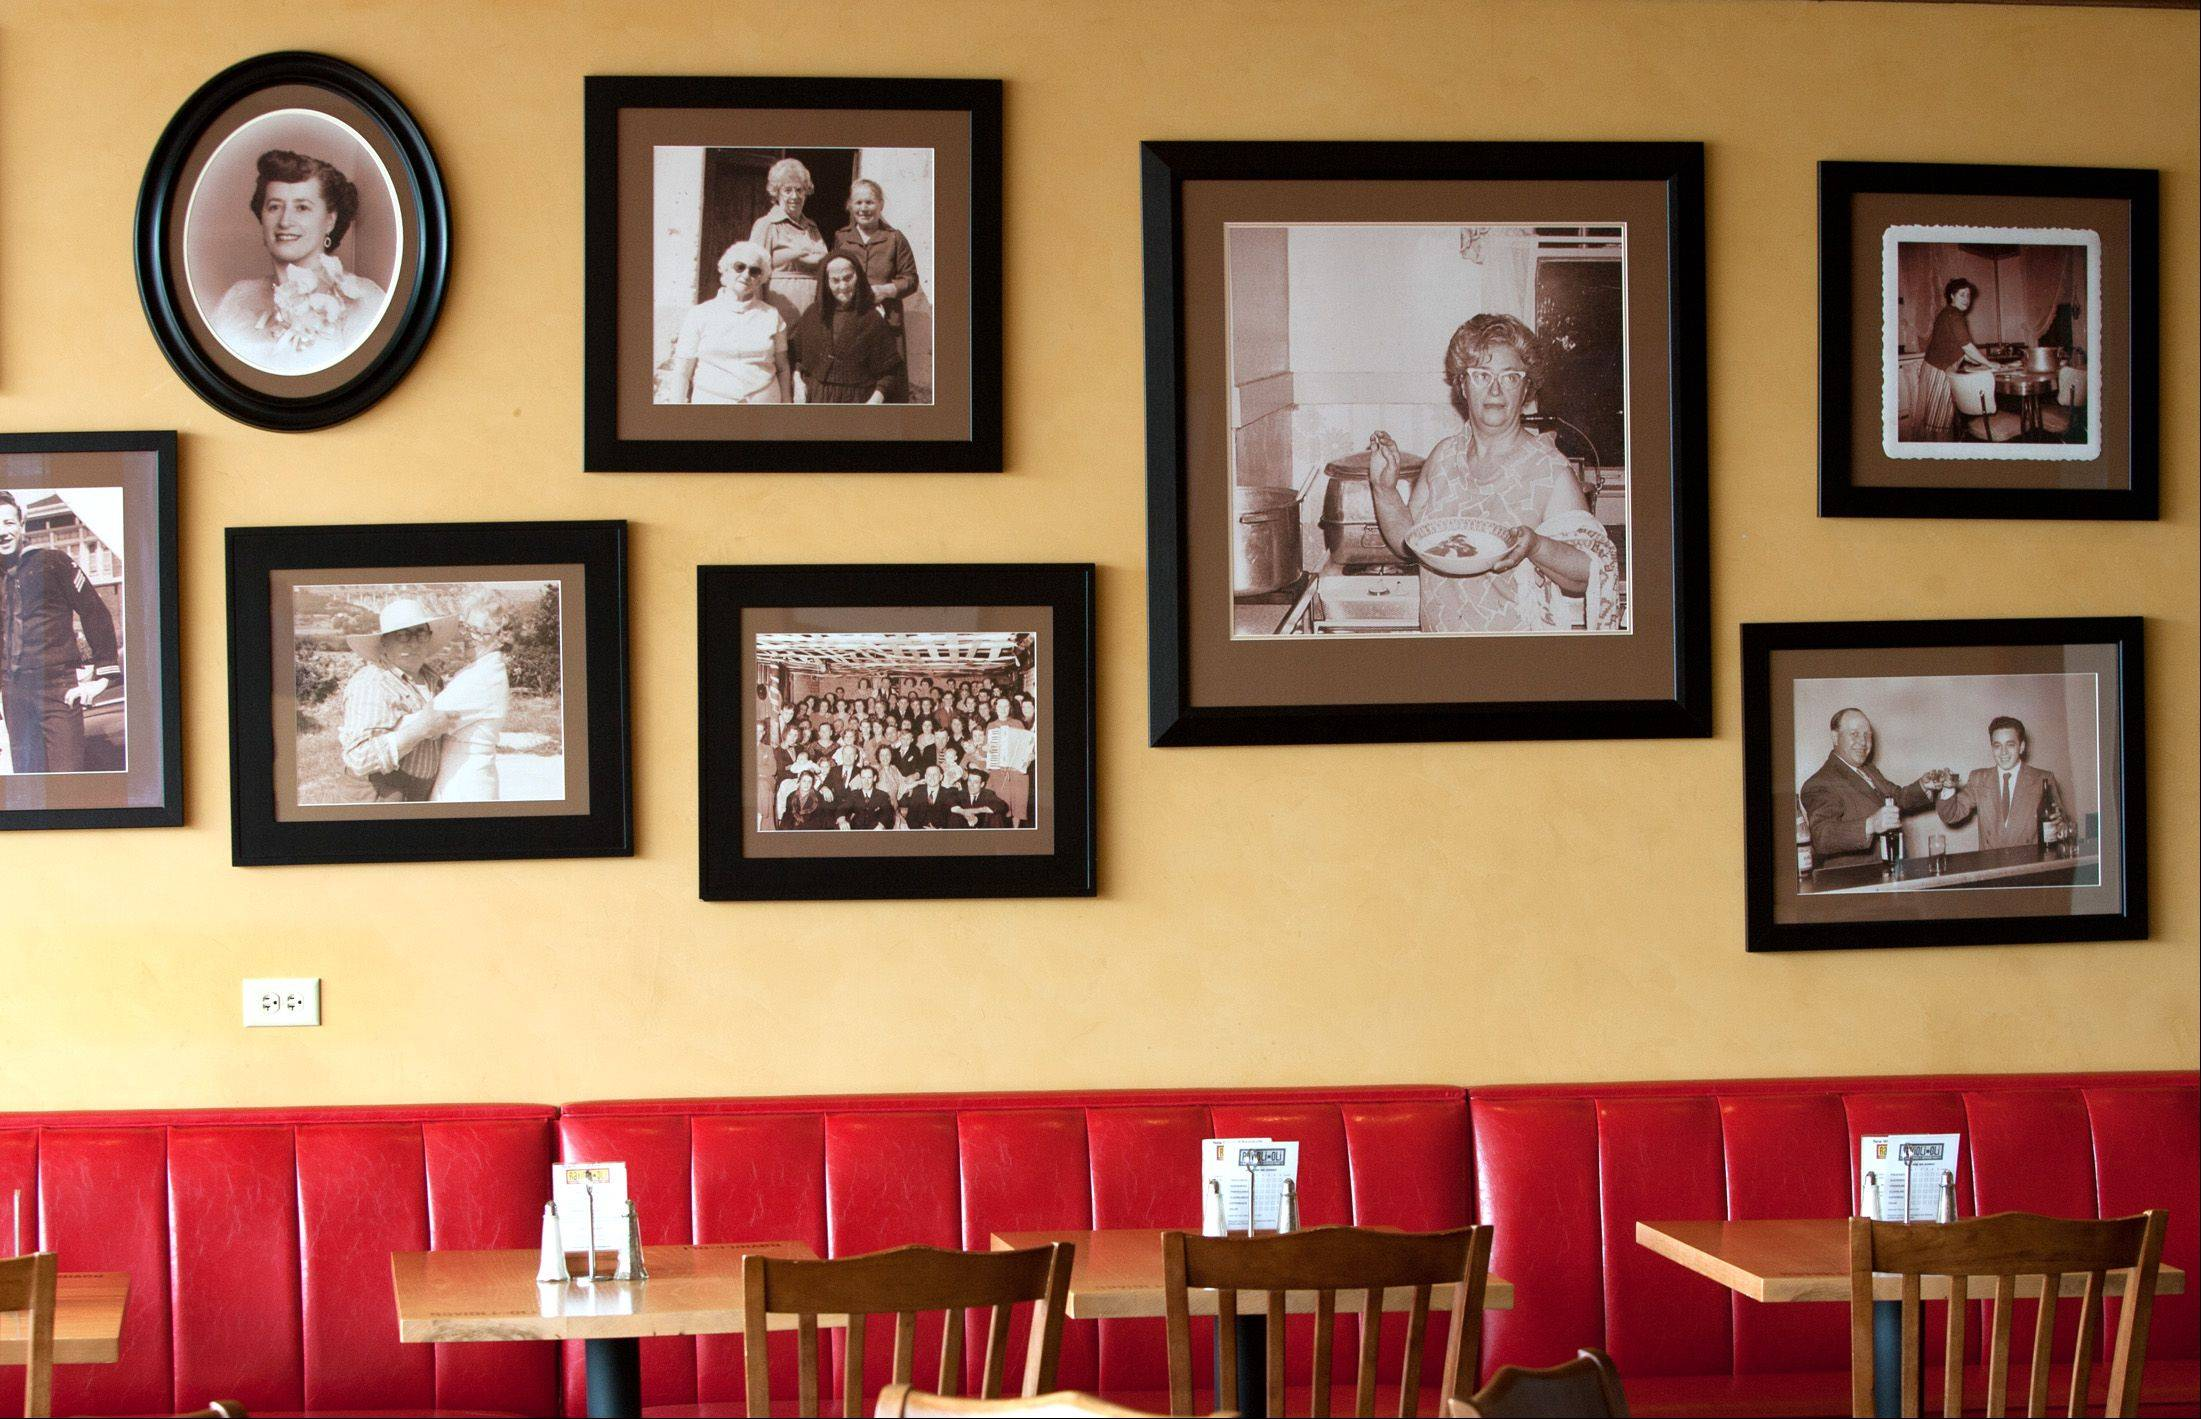 A sleek, contemporary setting is made cozy with dimmed lighting and family photos at Ravioli Oli in Oak Brook.